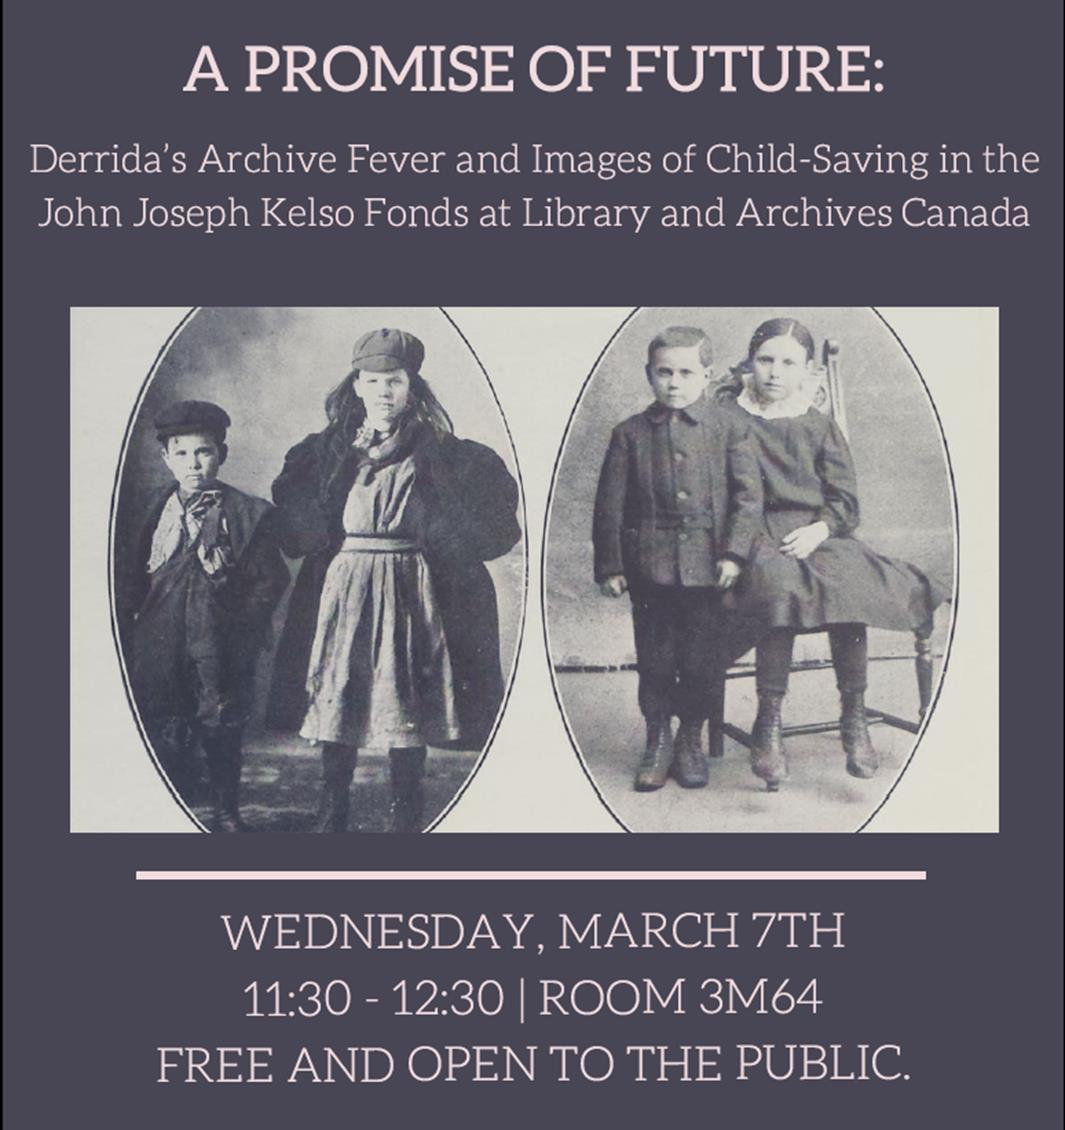 A Promise of Future: Derrida's Archive Fever and Images of Child-Saving in the John Joseph Kelso Fonds at Library and Archives Canada